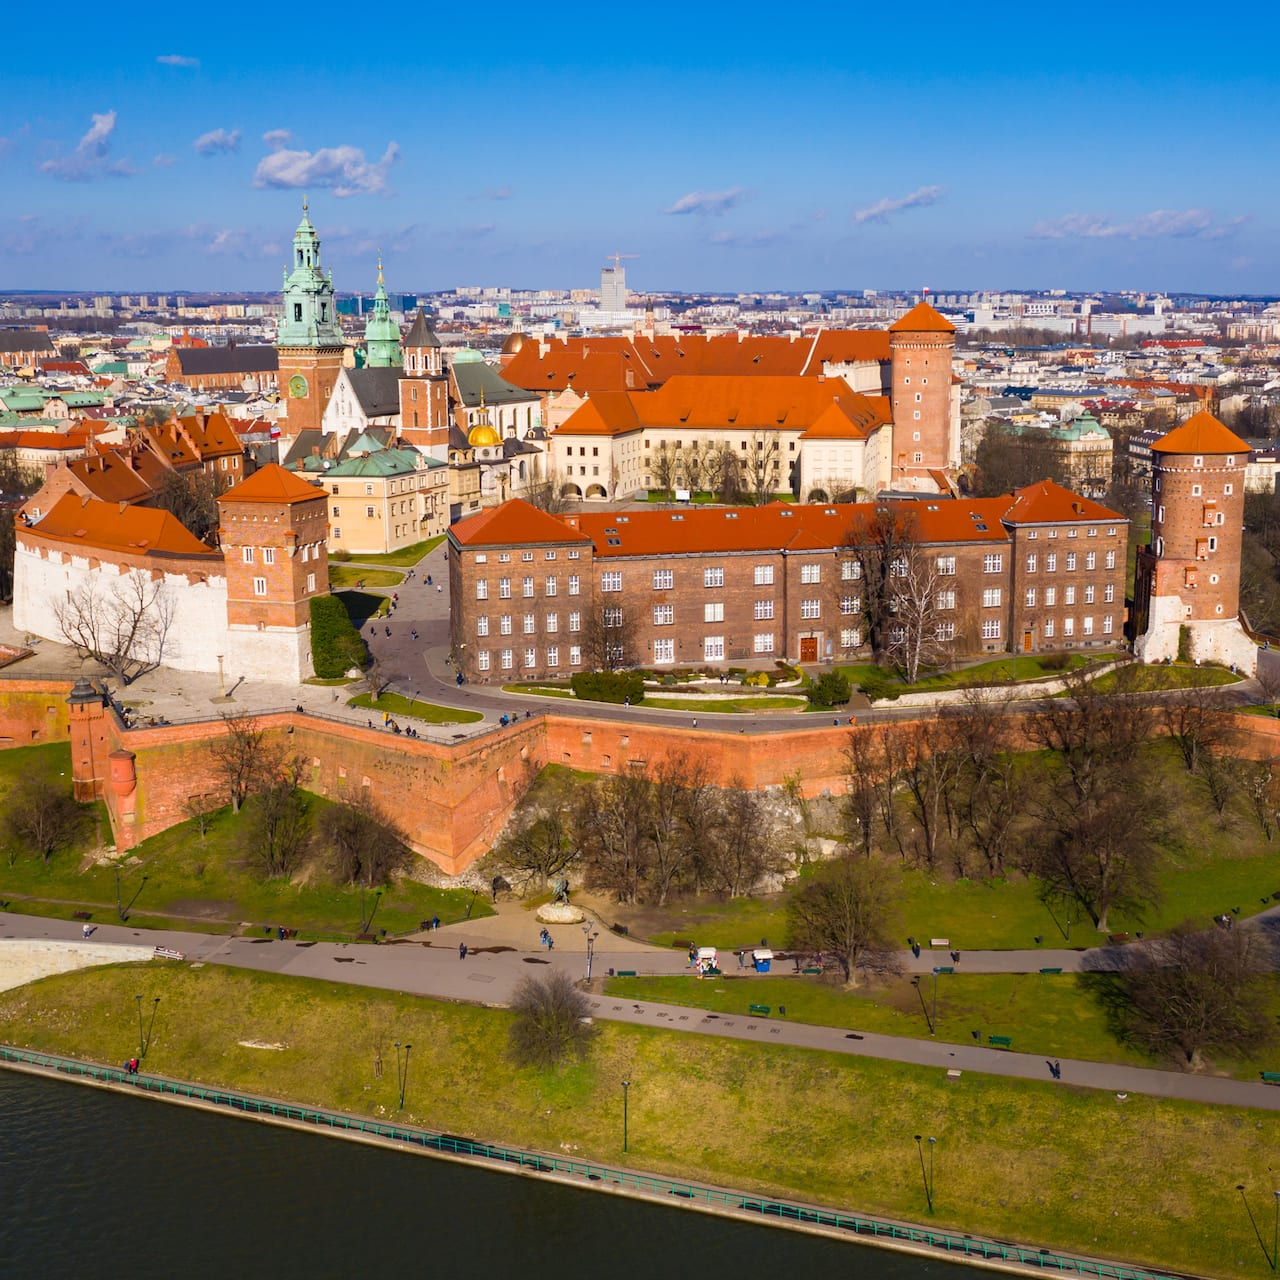 Wawel Castle on a hill, surrounded by the city of Krakow